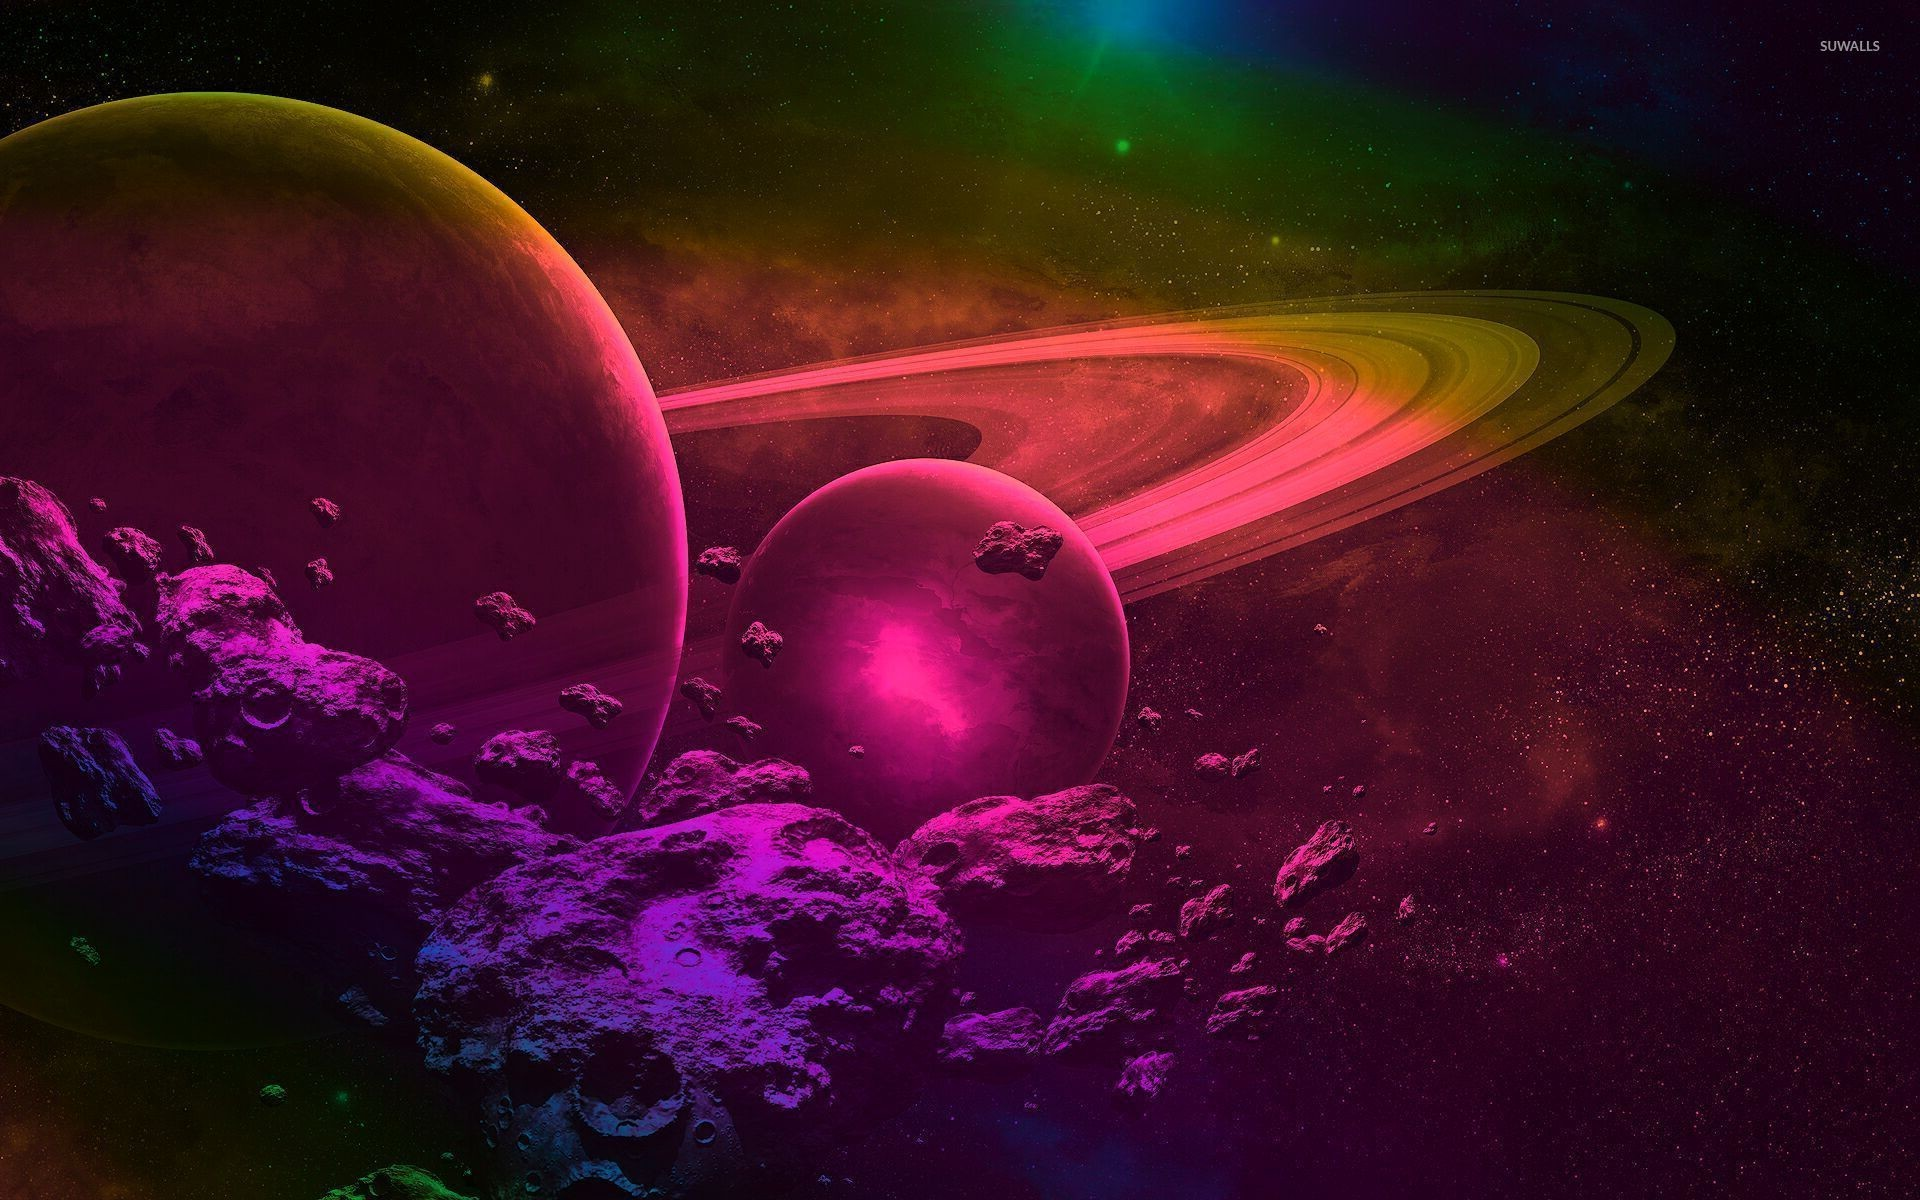 1920x1200 Pink and purple space wallpaper  jpg